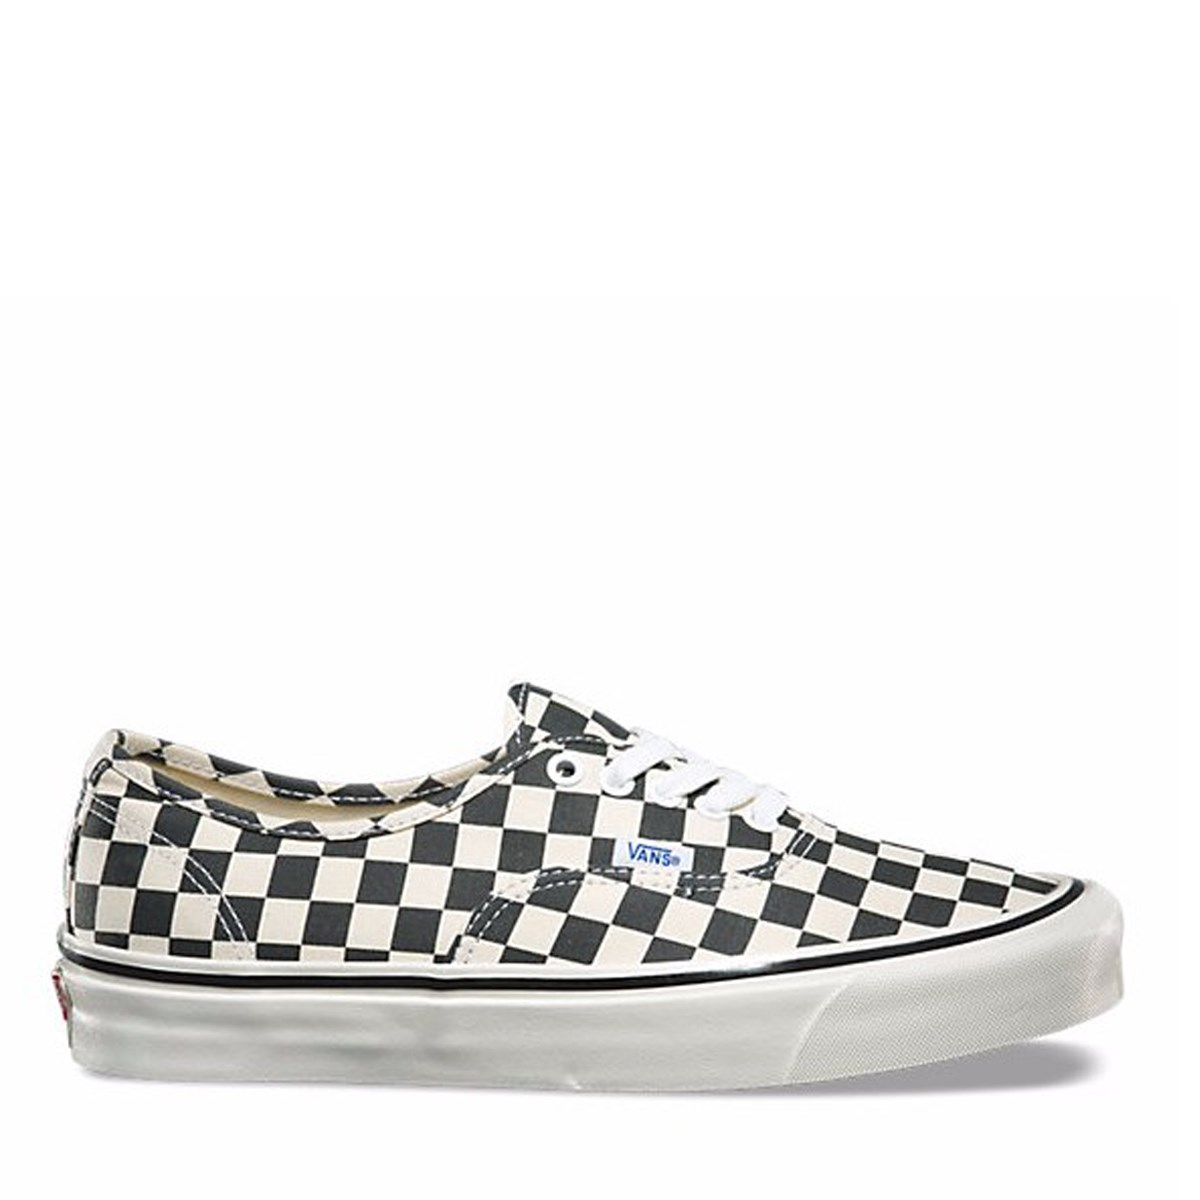 c1e4bfba0759 Authentic Anaheim 44 DX Black Checker Sneaker. Previous. default view ...